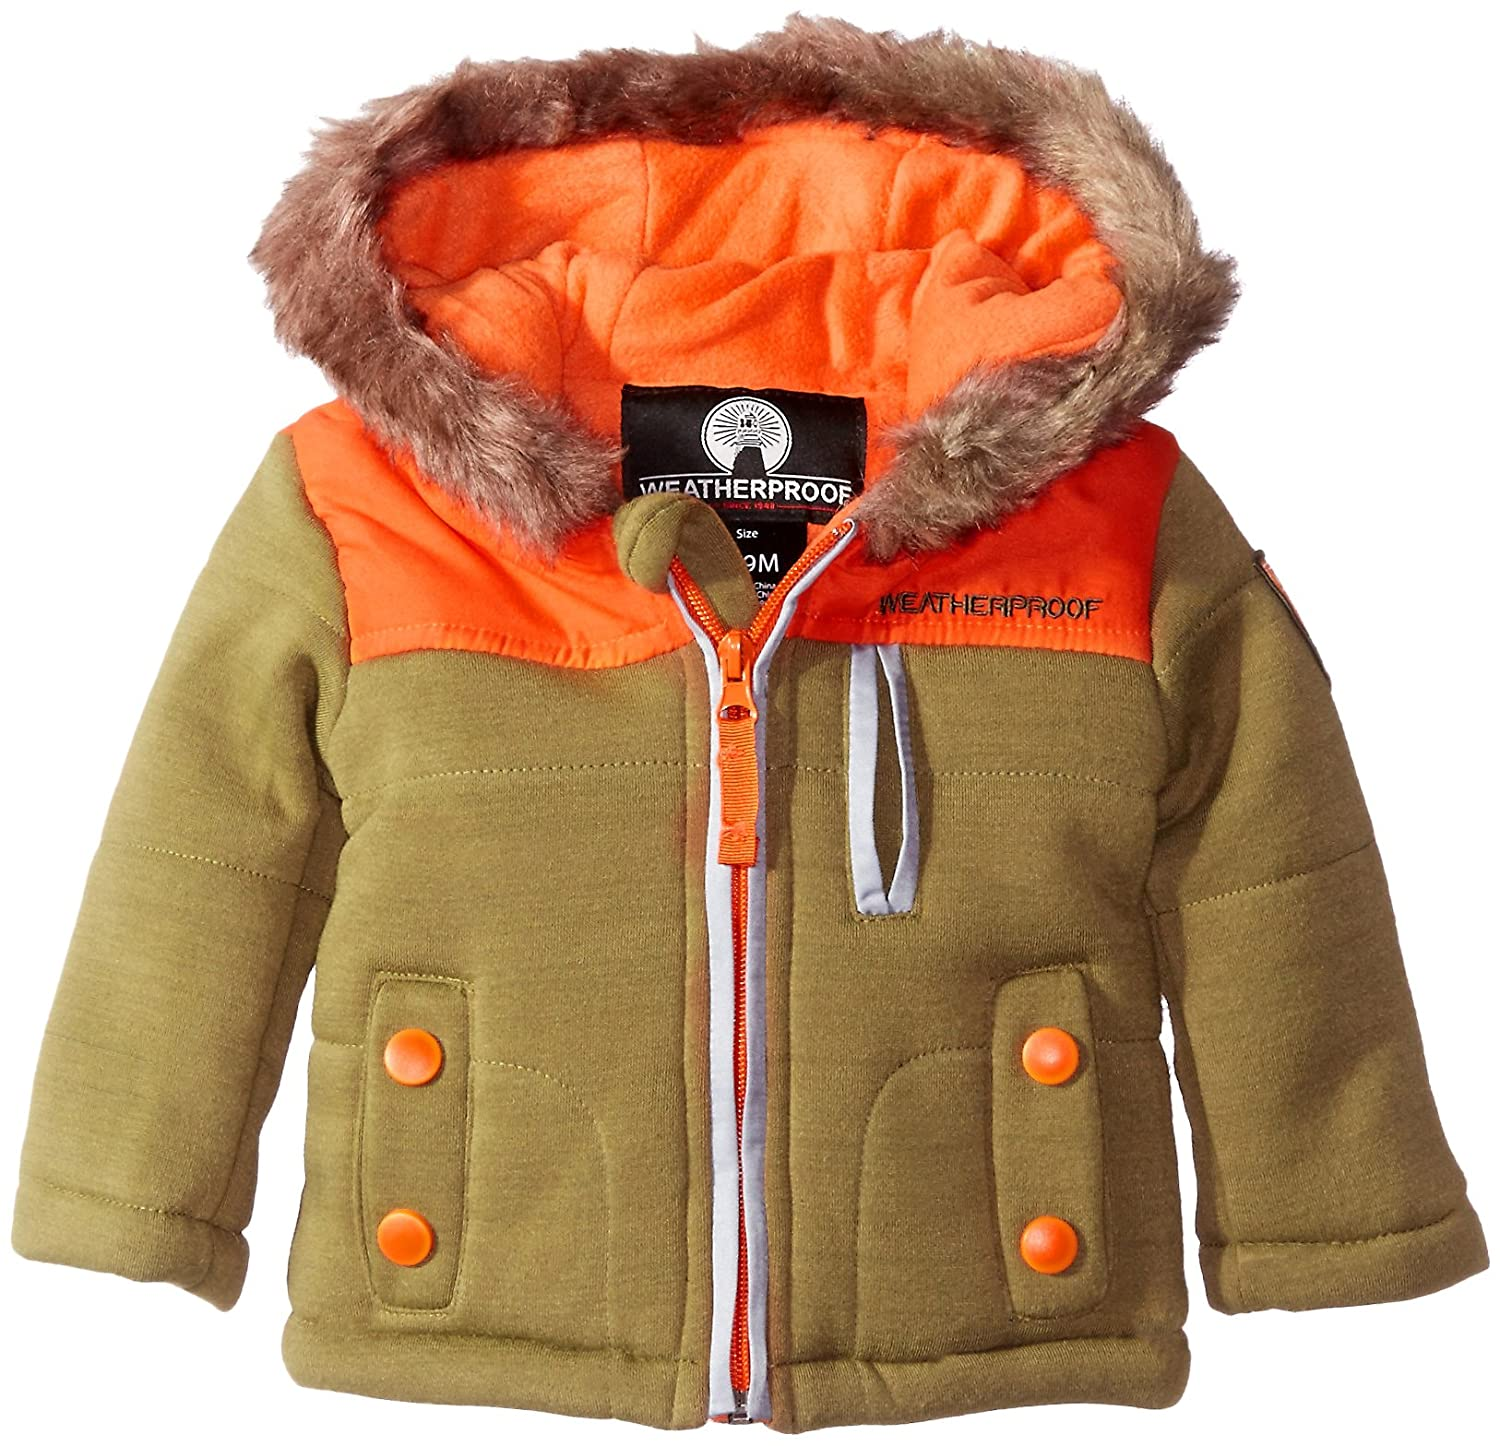 Weatherproof Baby Bubble Jacket (More Styles Available) Loden 12 Months JIW044H